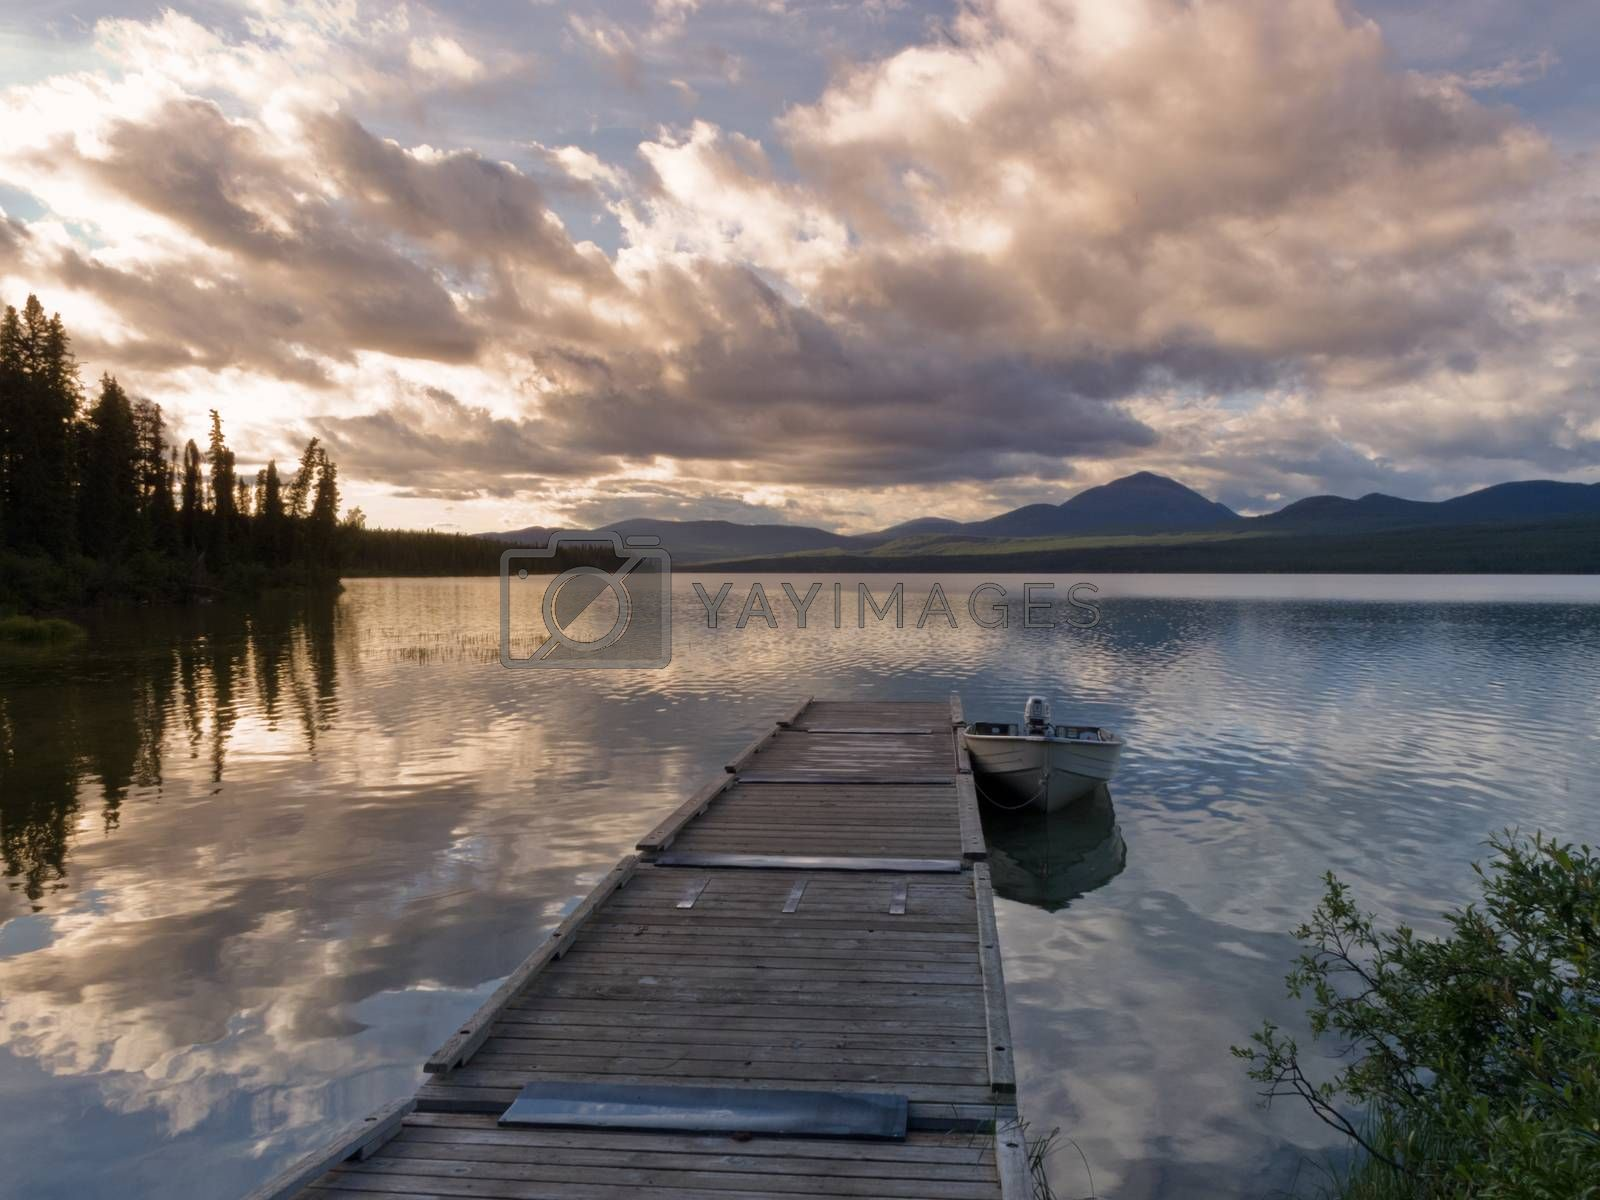 Rustic wooden float dock jetty boat tranquil lake by PiLens